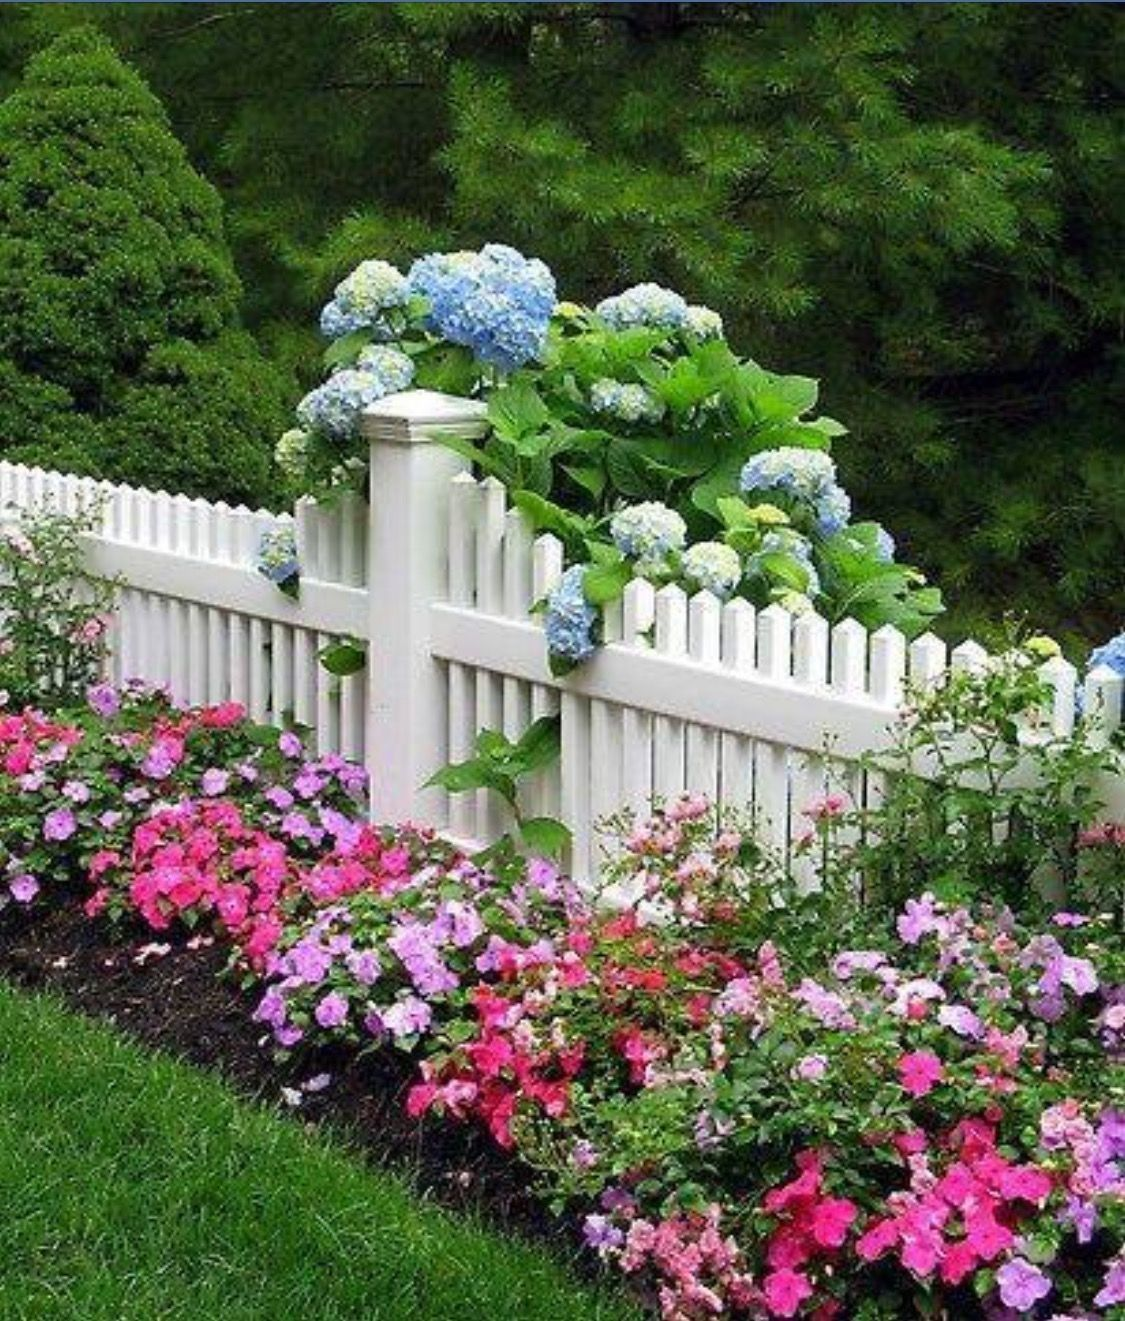 Picket Fence Sets Off The Colorful Flower Bed & Full